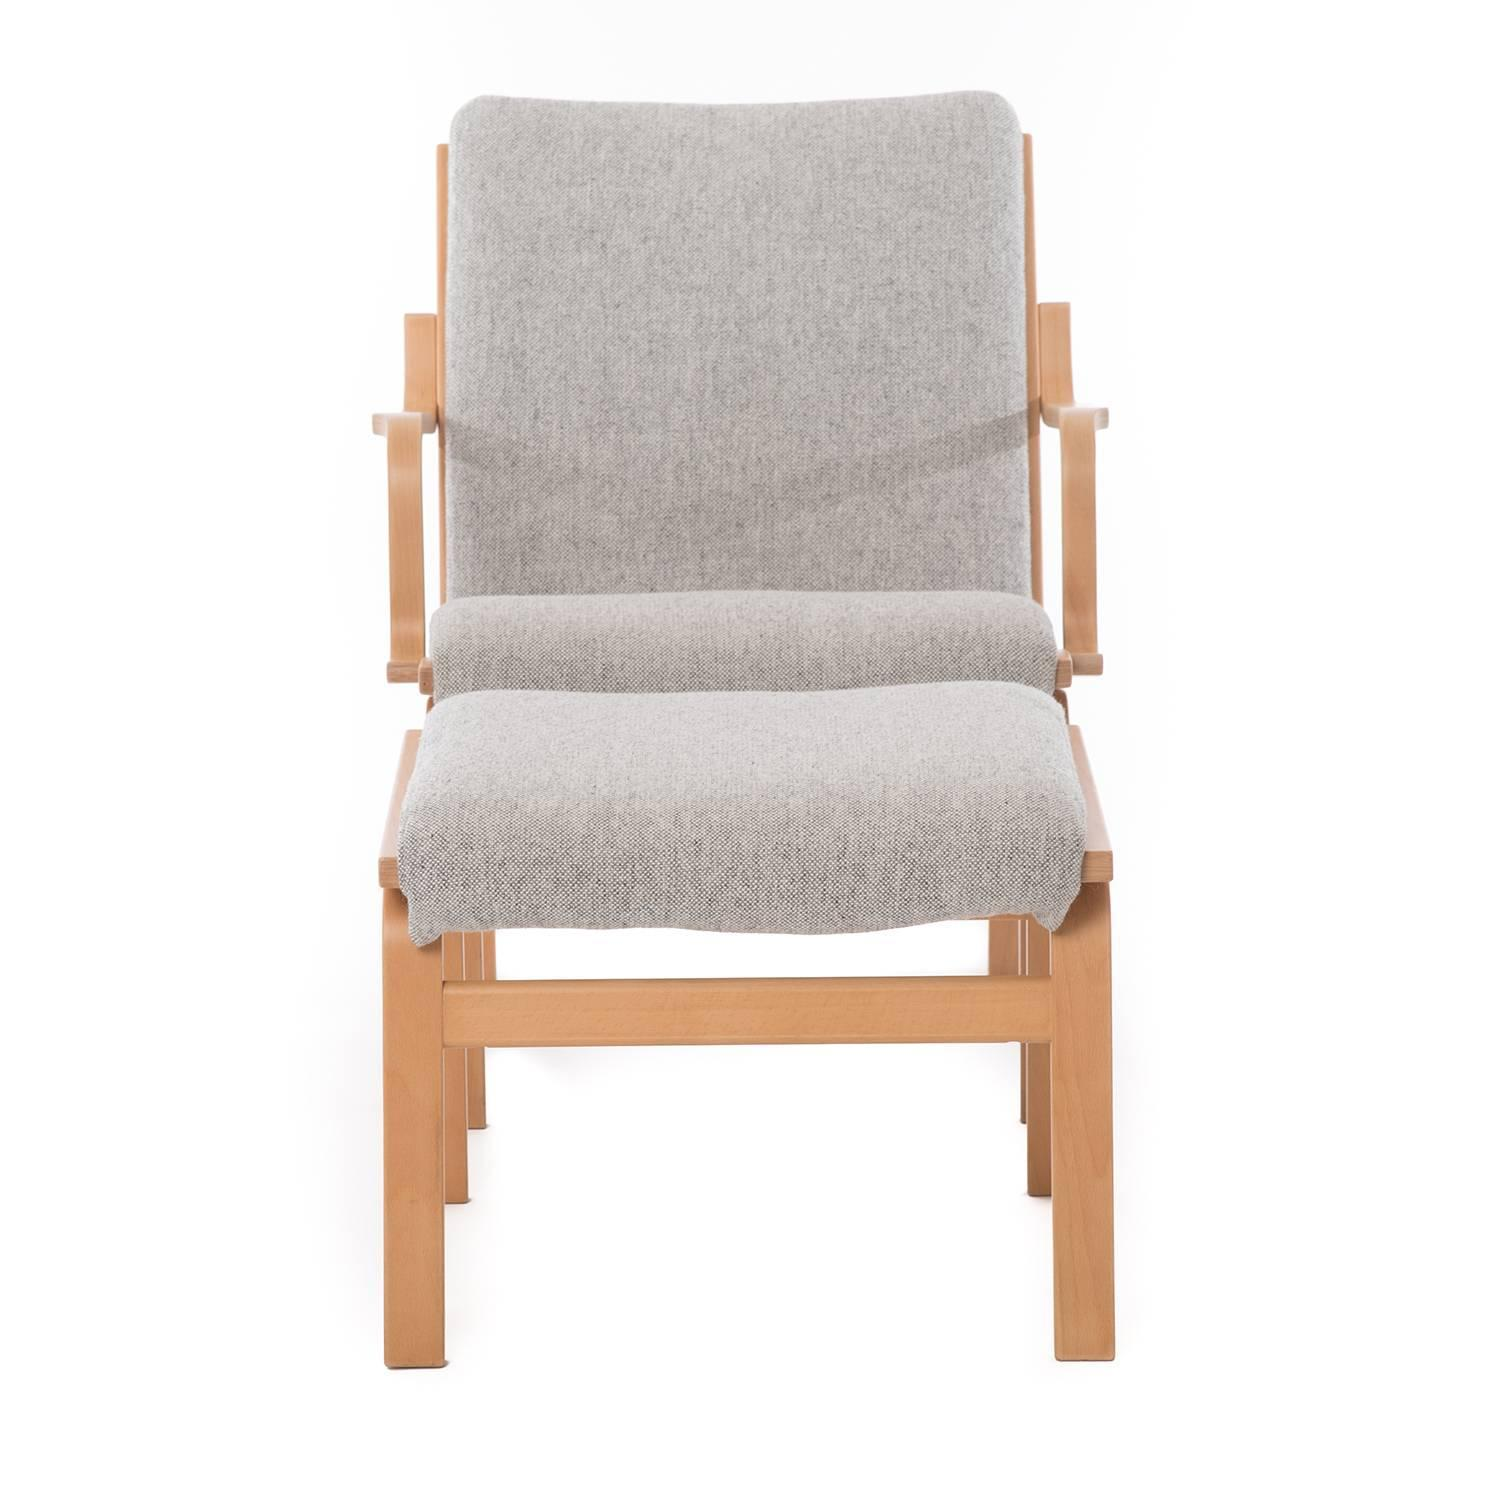 modern bentwood chairs keter baby high chair reviews danish and ottoman for sale at 1stdibs